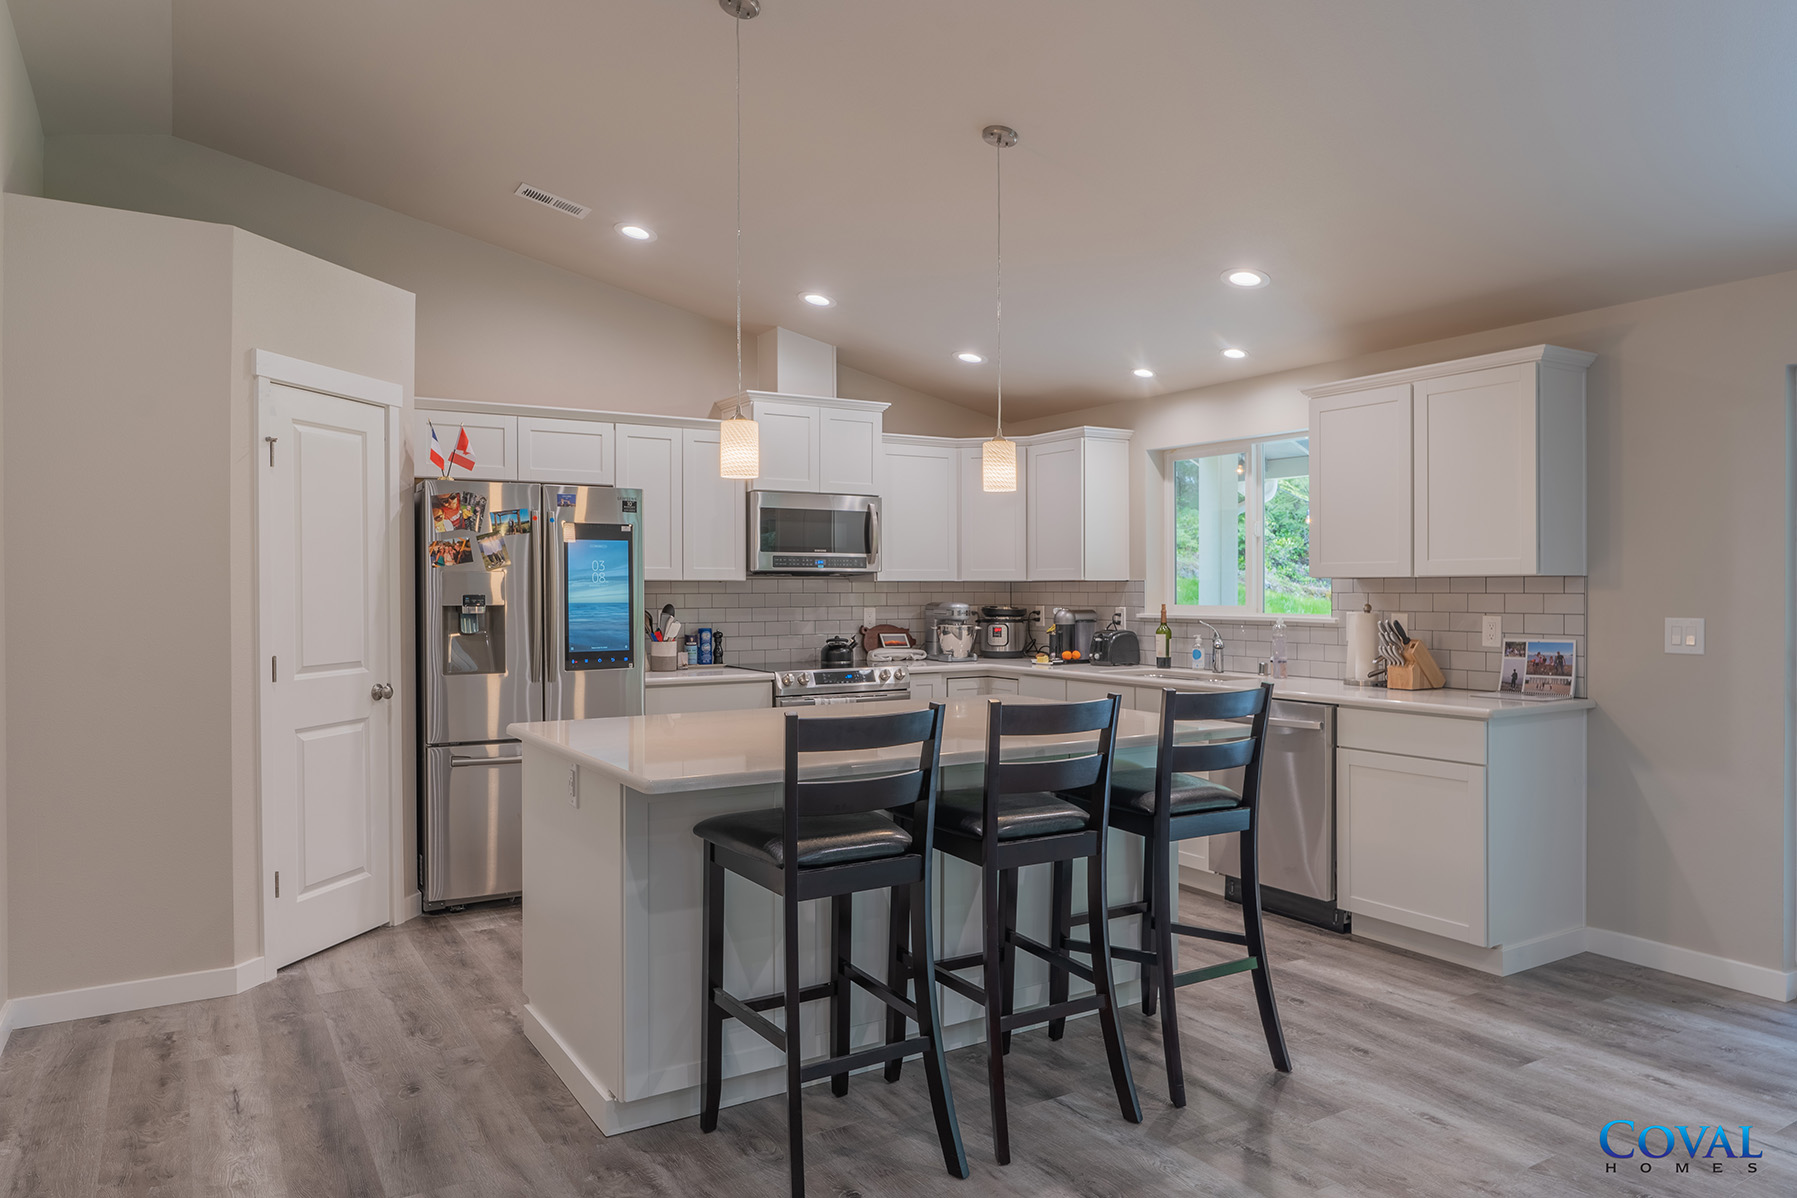 Coval Madrona - 2214 SqFt - 4 Bed - 2.5 Bath - 1-Story